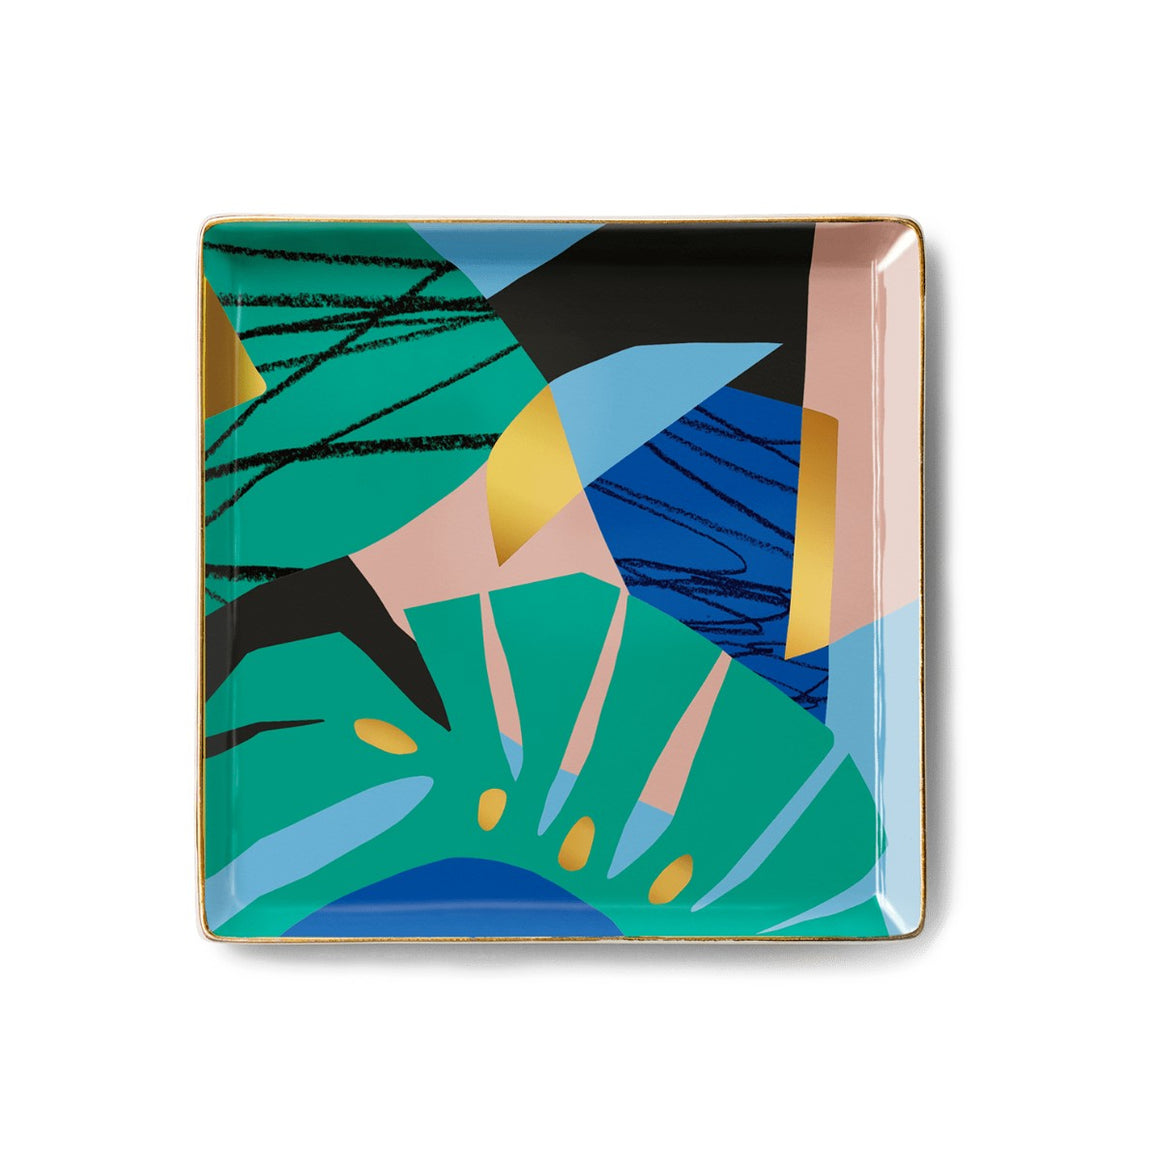 A square ceramic tray with a tropical abstract design featuring tropical leaf shapes and block abstract shapes in black, green, pink, blue, gold.